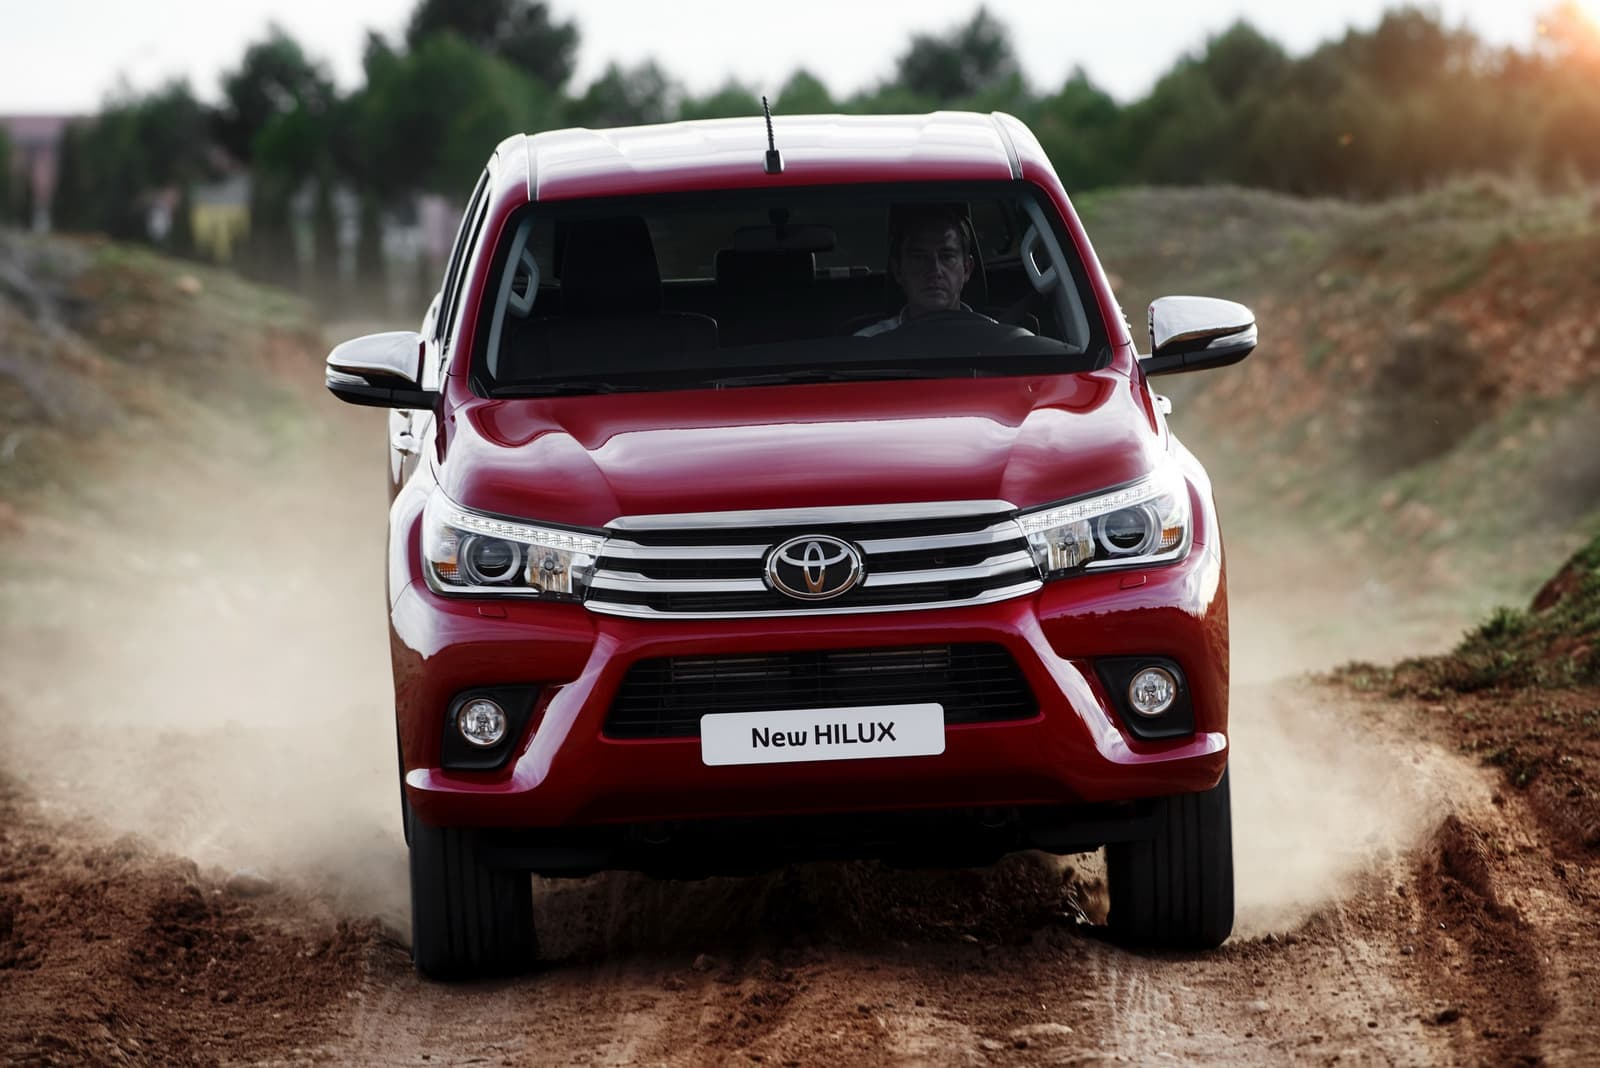 Car Pictures Wallpaper Net Speed Toyota Hilux 2016 Wallpapers Hd High Quality Download